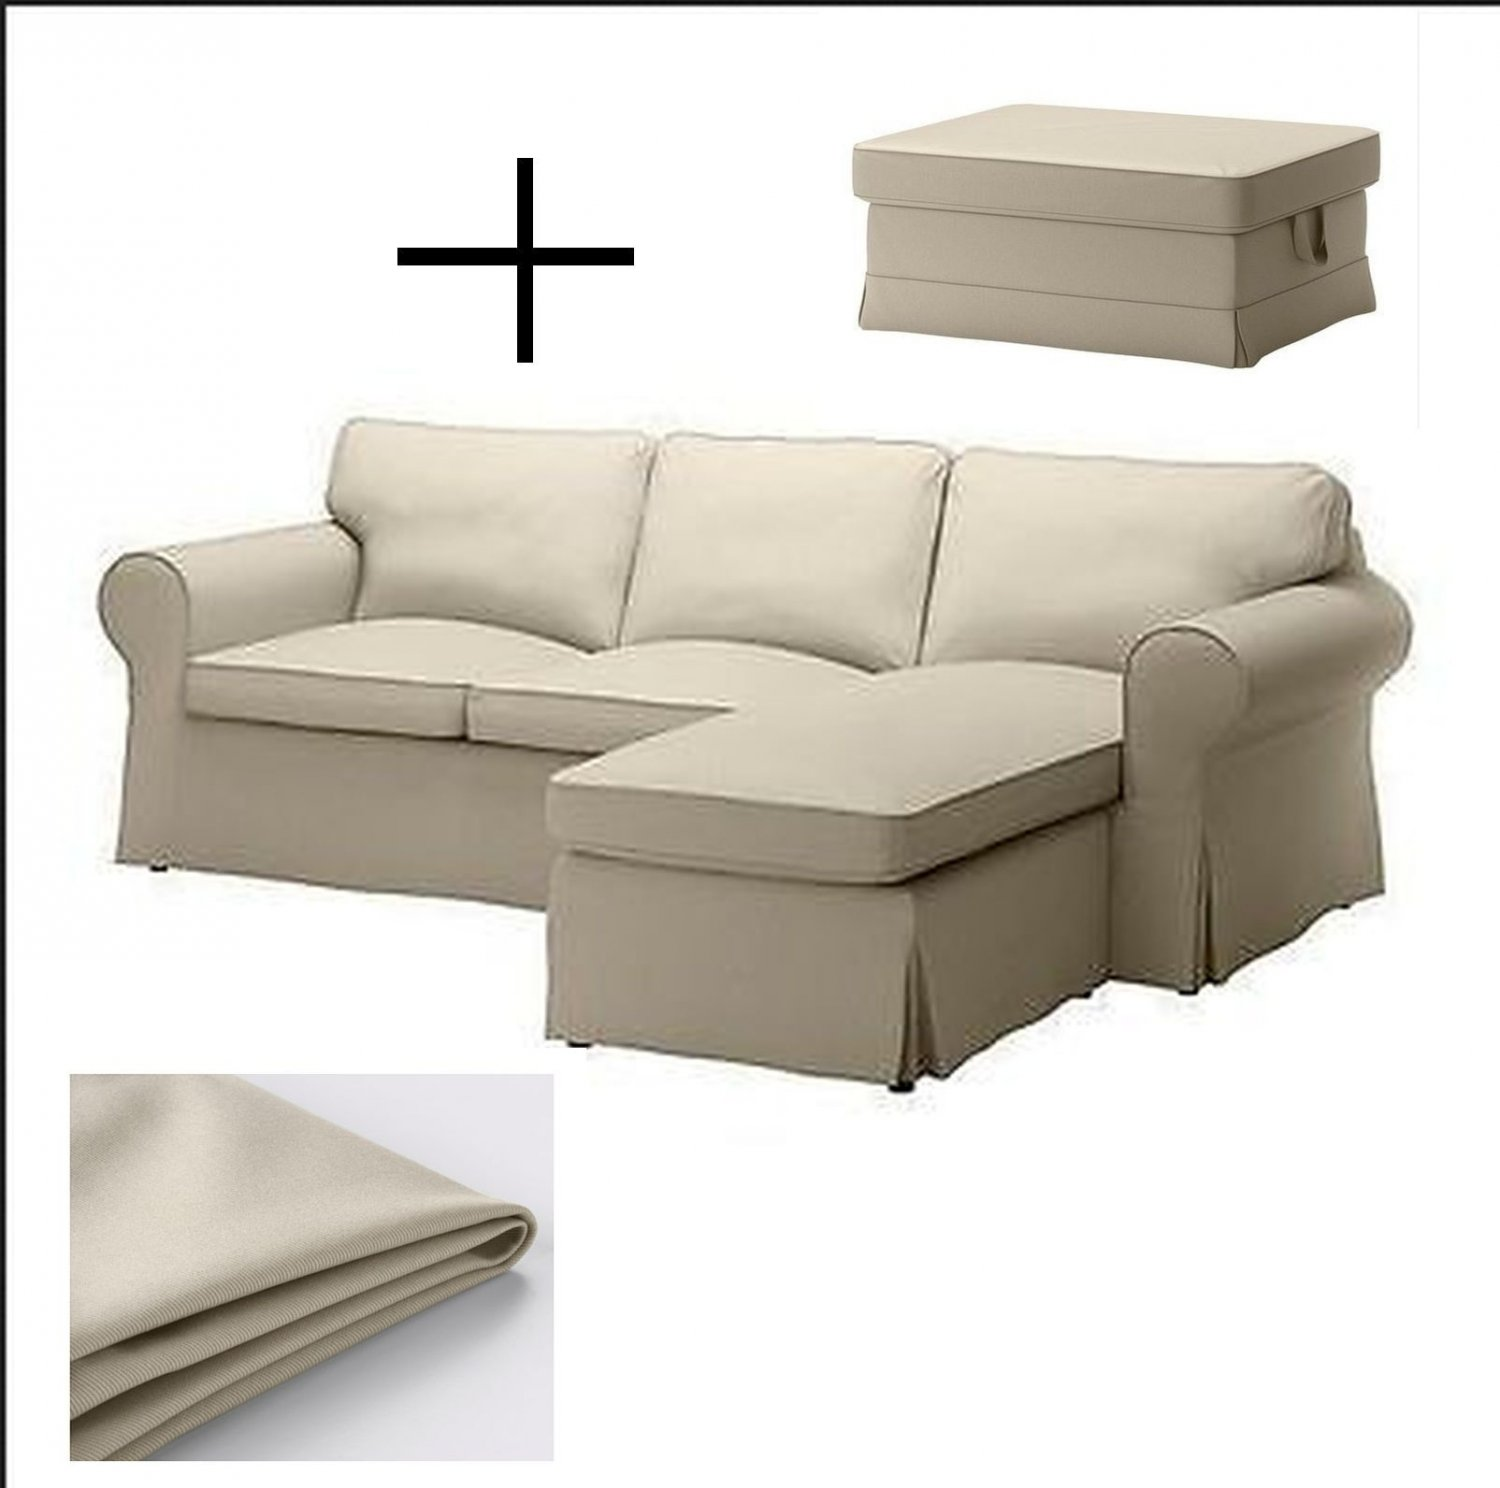 Ikea Ektorp Loveseat Sofa W Chaise And Footstool Ottoman